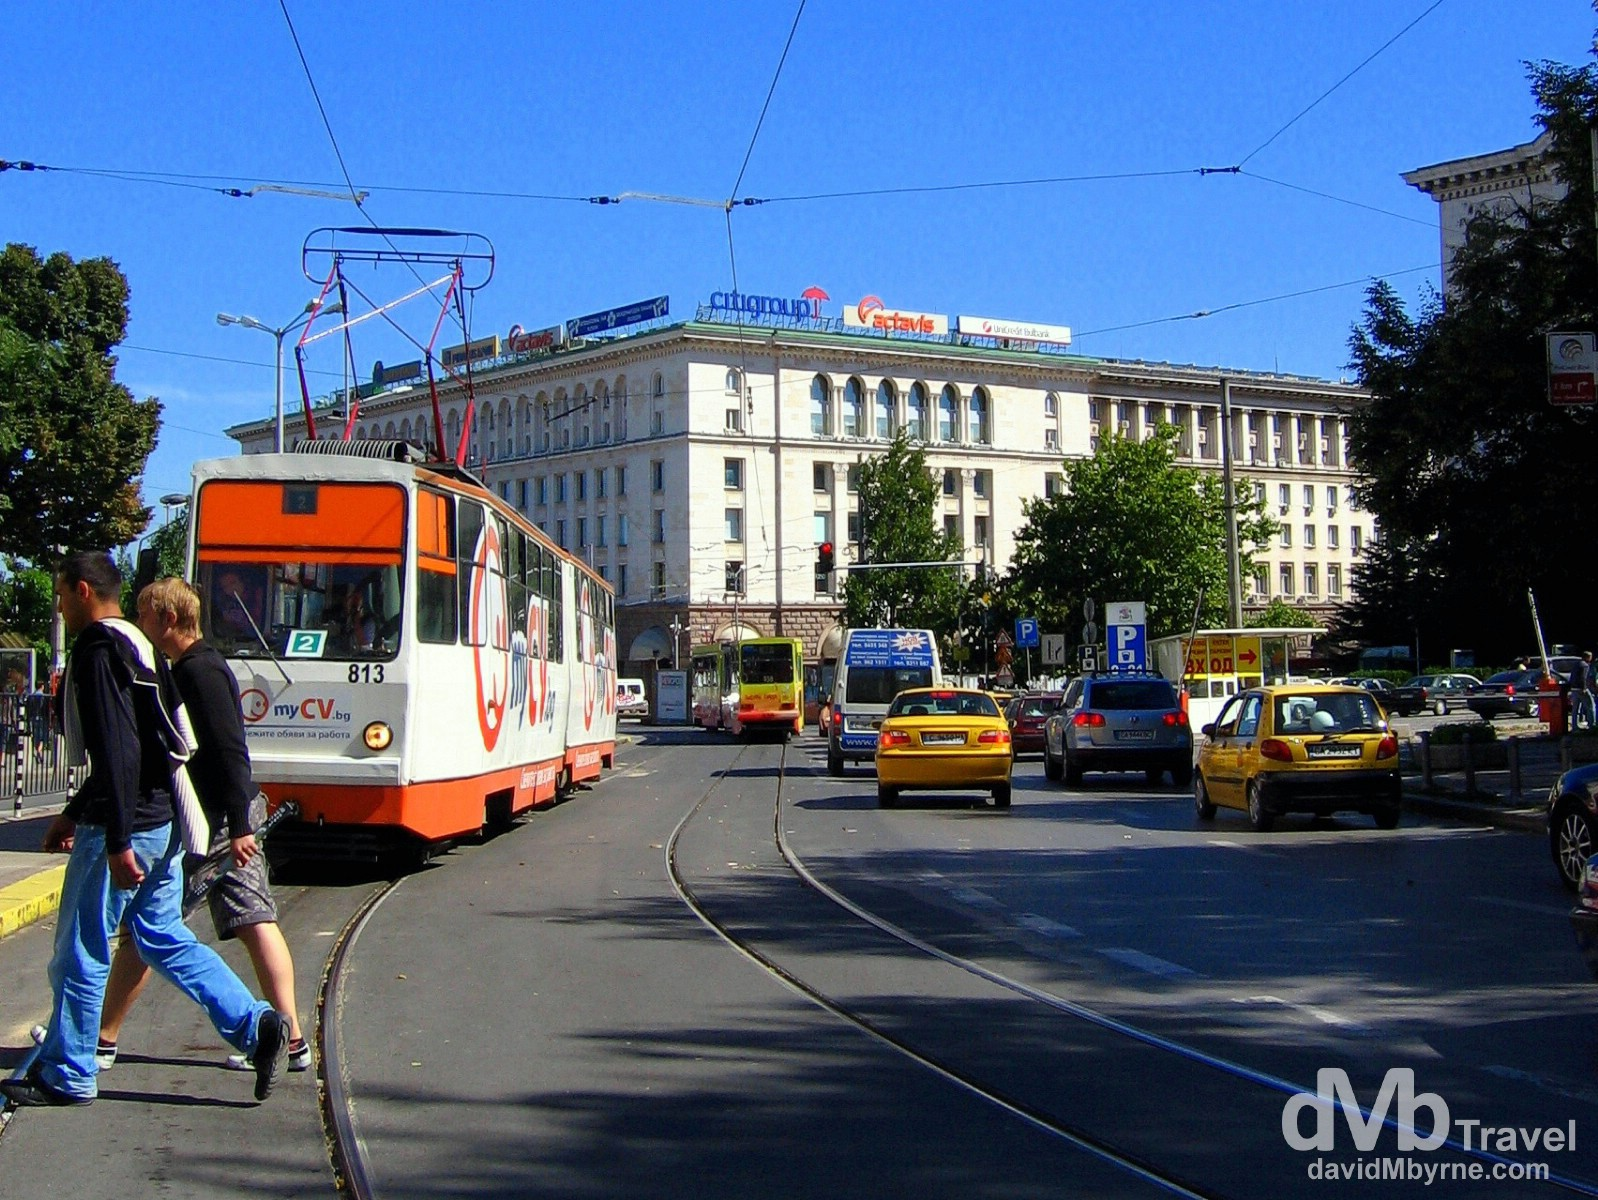 On the streets of Sofia, Bulgaria. September 16th, 2007.